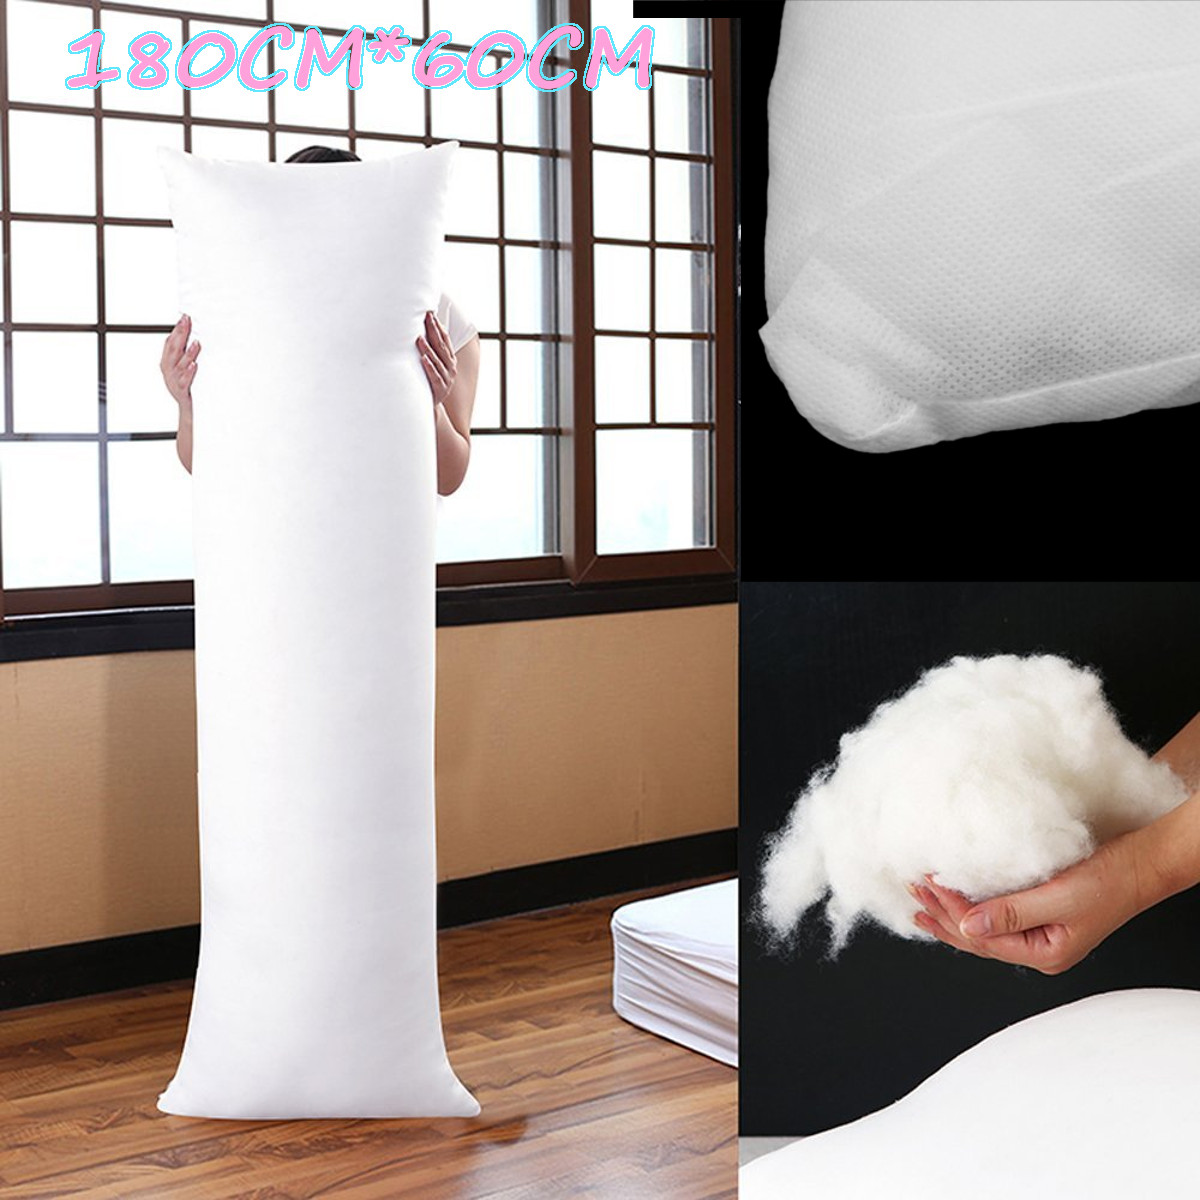 180cm x 60cm White Anime Dakimakura Comfortable Hugging Pillow Inner Body Cushion Bed Pillows